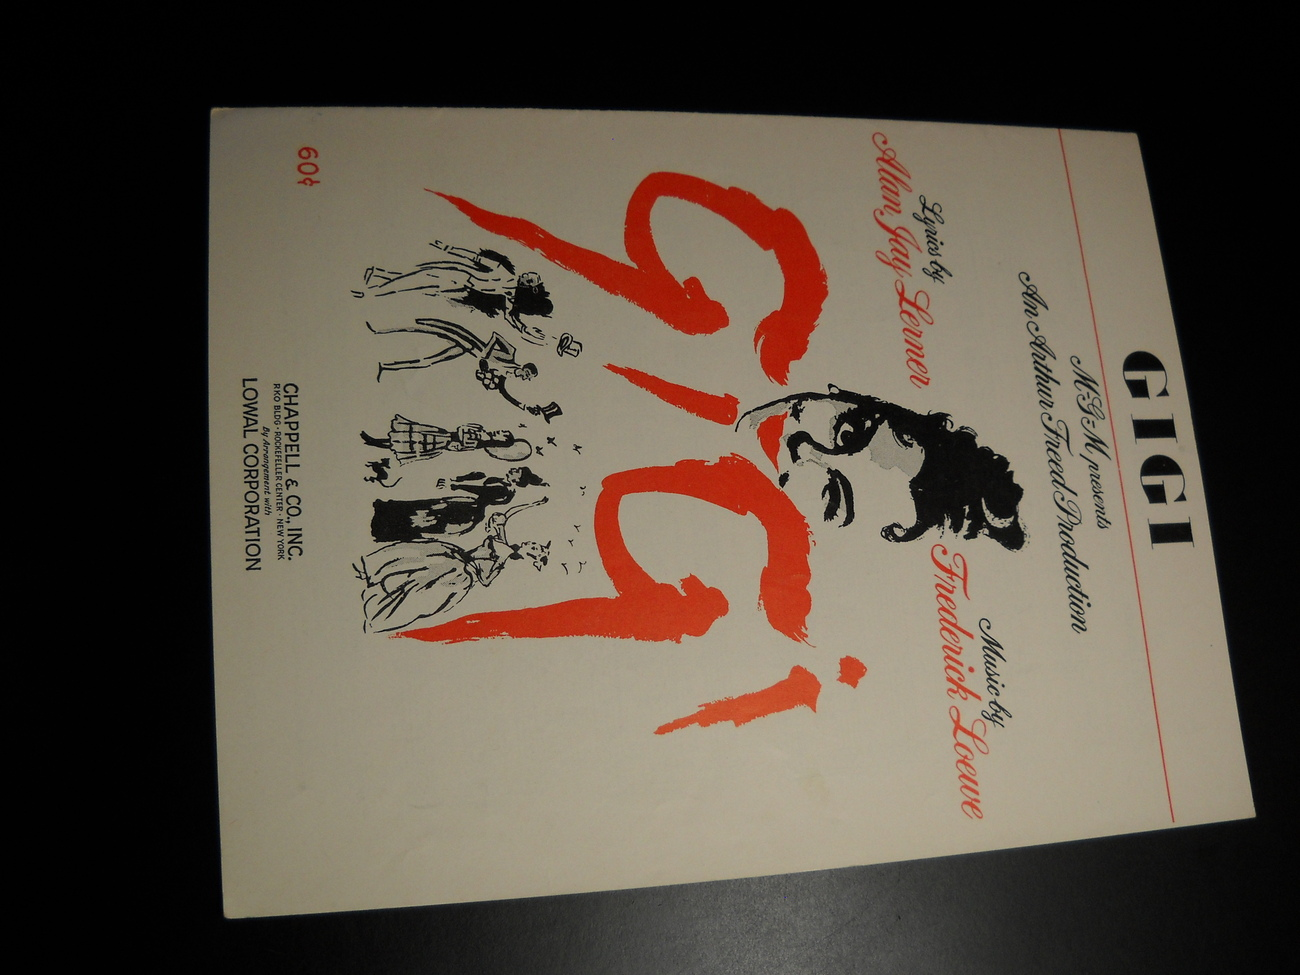 Sheet Music Gigi Lerner and Loewe MGM Lowal Chappell Music Alfred Freed 1958